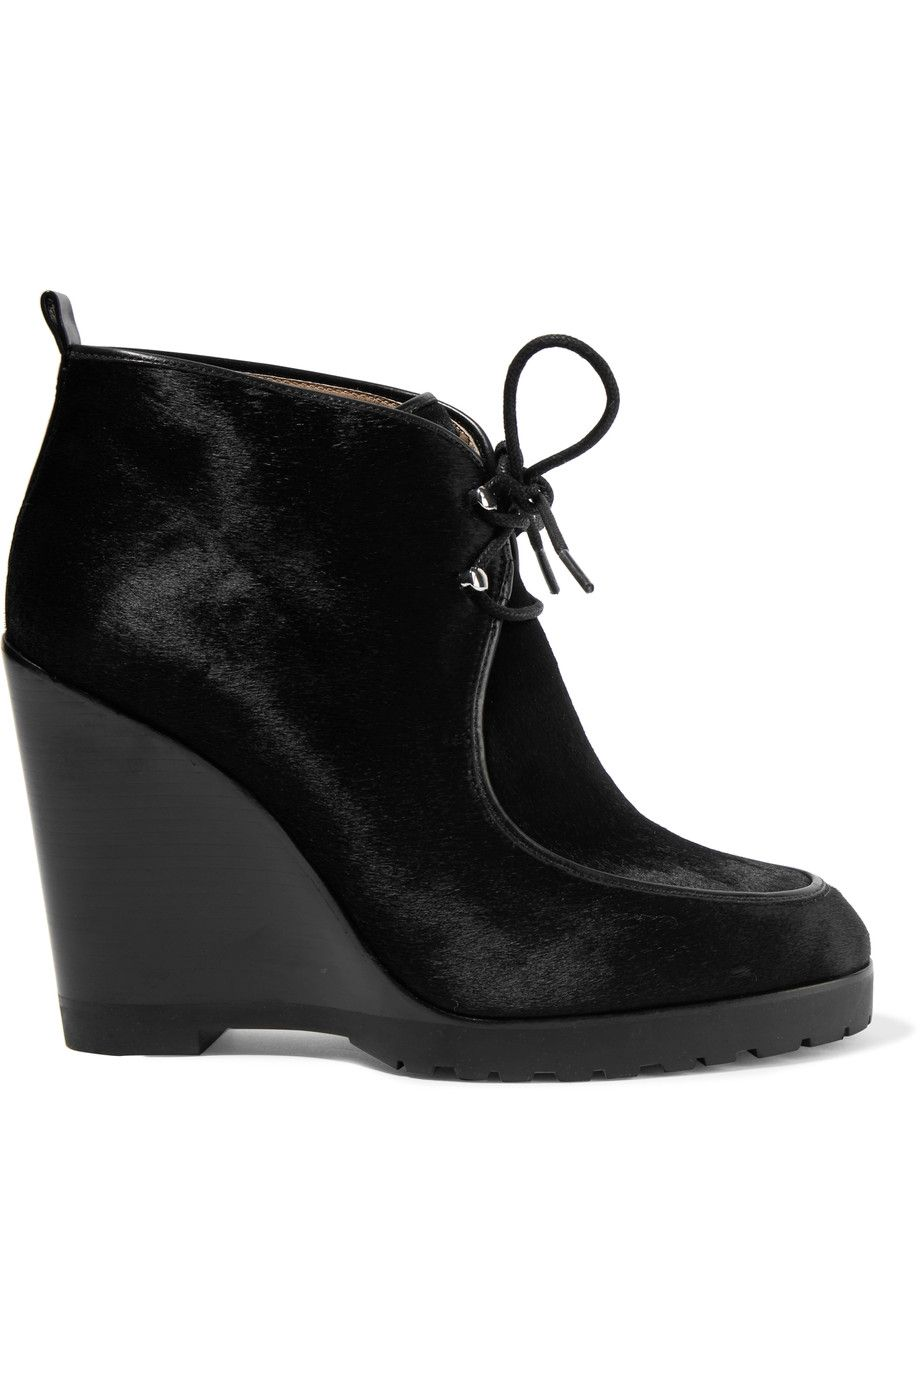 9990bbbbe5c MICHAEL KORS Beth calf hair wedge ankle boots.  michaelkors  shoes  boots